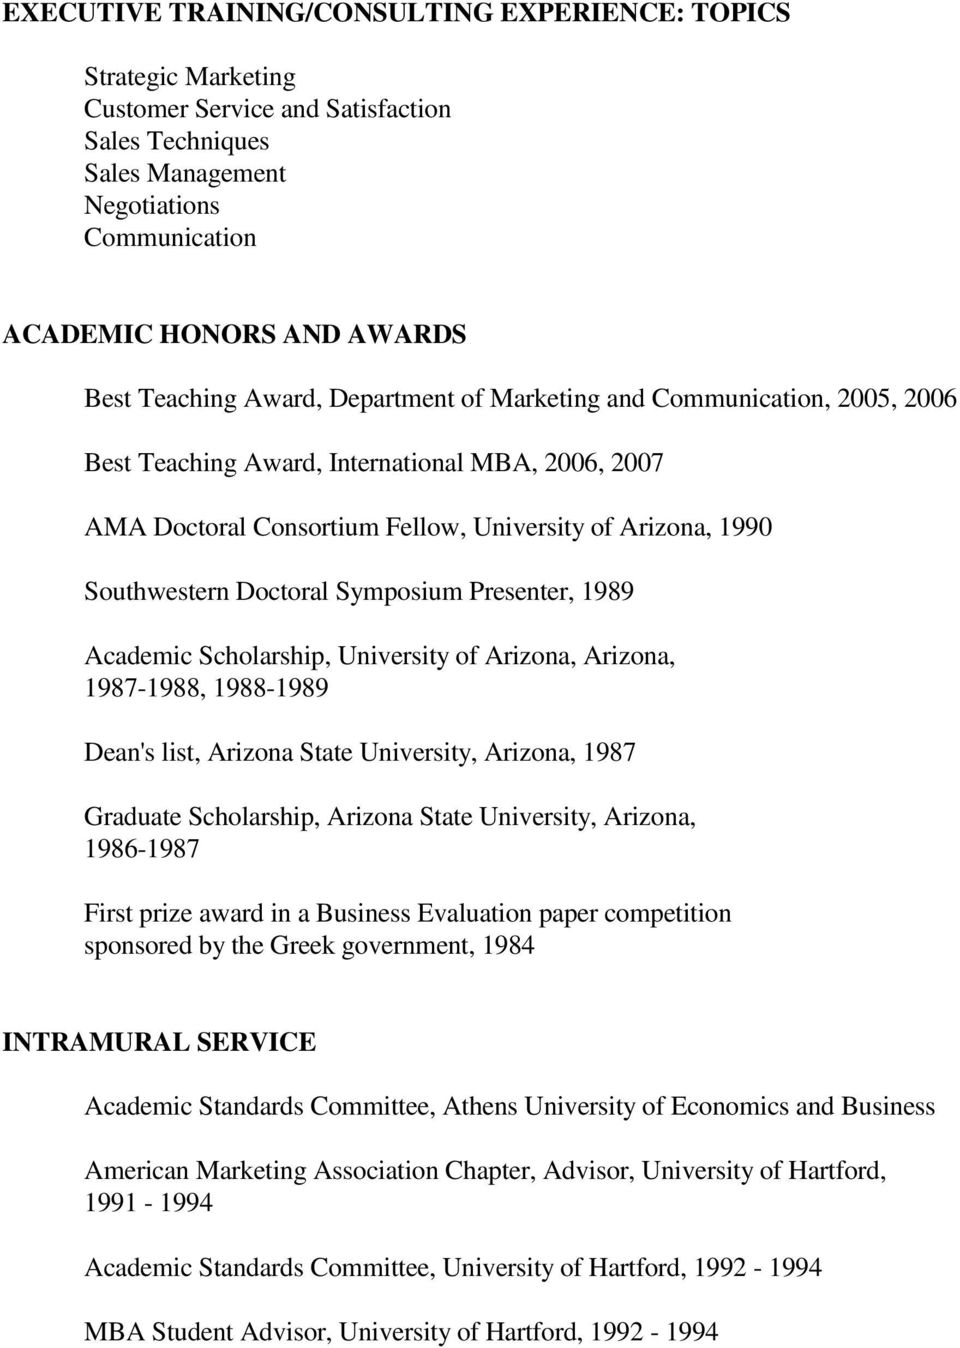 Doctoral Symposium Presenter, 1989 Academic Scholarship, University of Arizona, Arizona, 1987-1988, 1988-1989 Dean's list, Arizona State University, Arizona, 1987 Graduate Scholarship, Arizona State